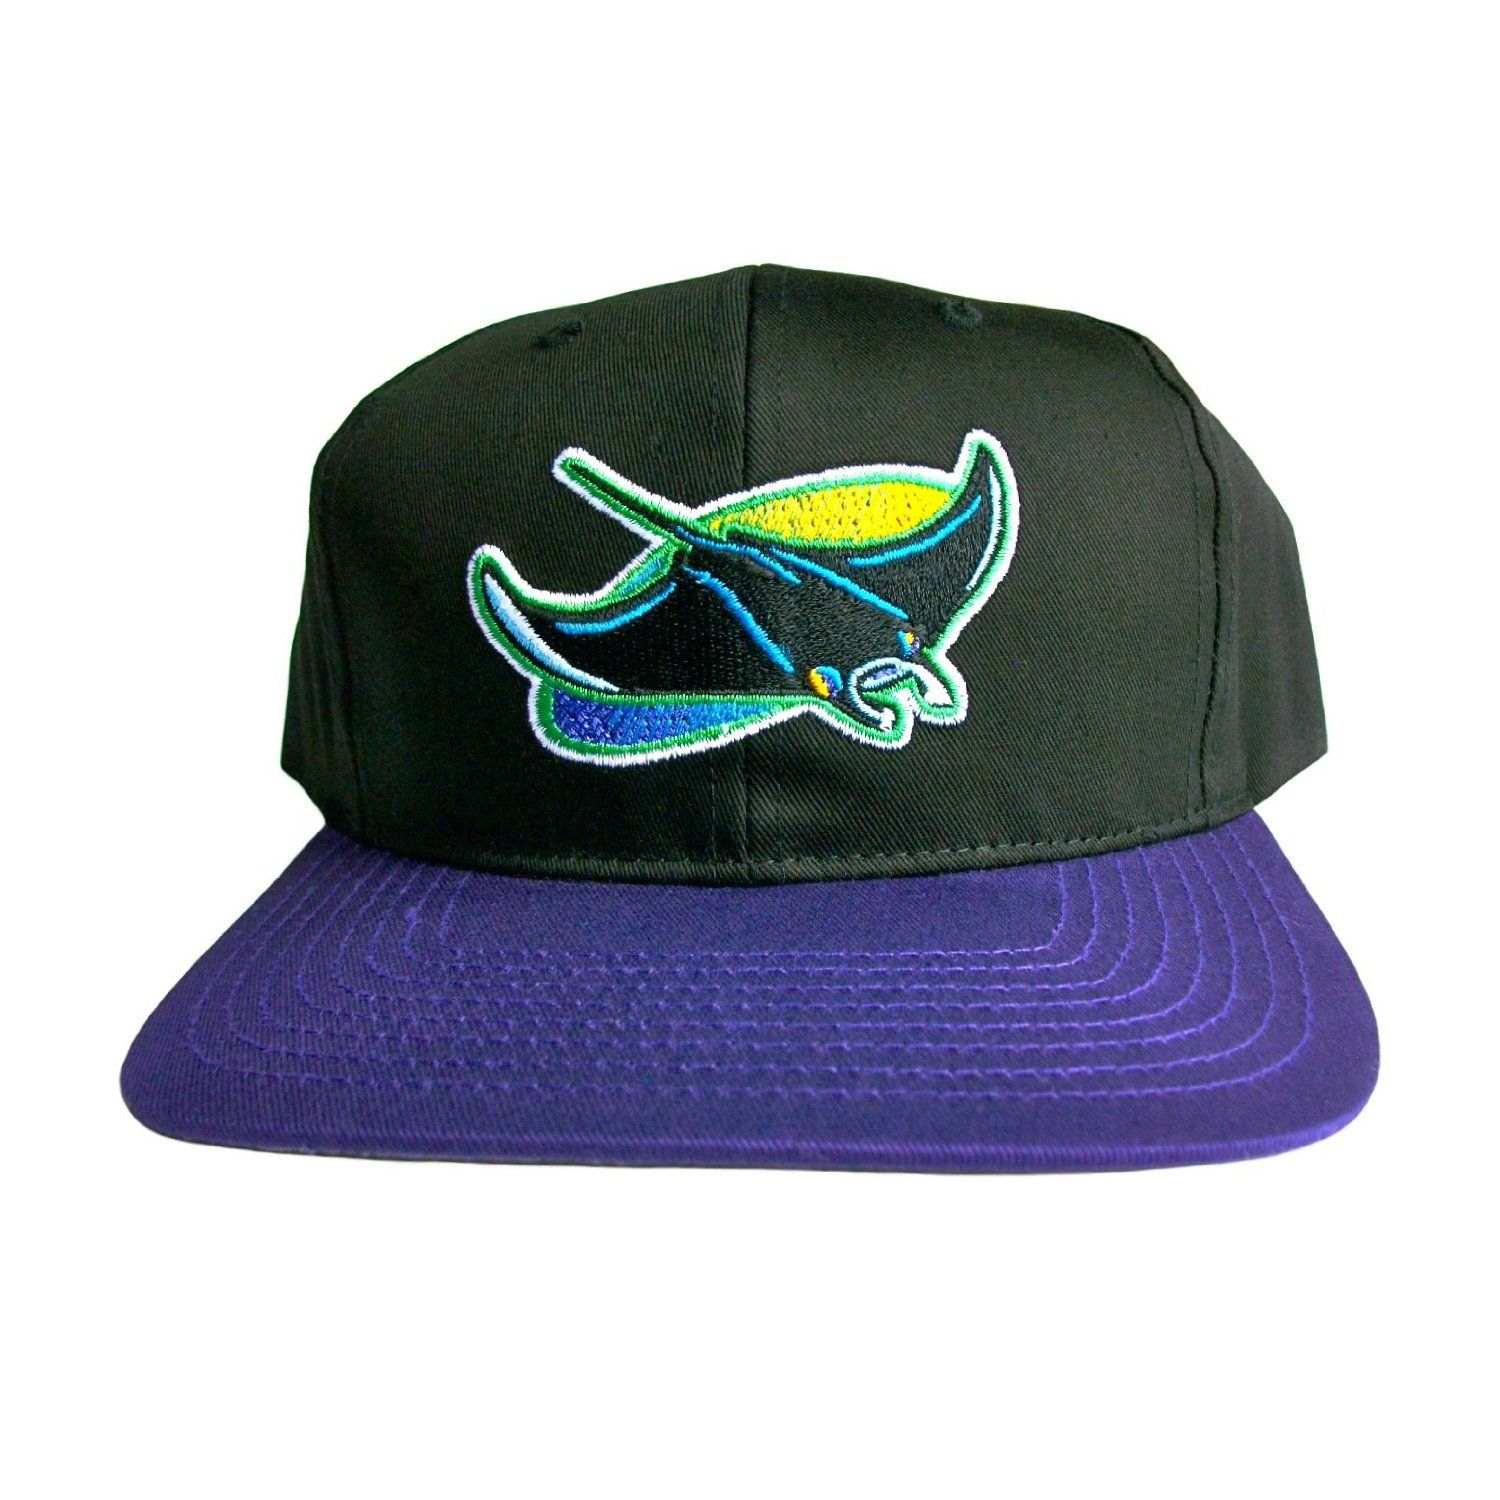 b4d826e287d VINTAGE TAMPA BAY DEVIL RAYS Retro Old School Snapback Hat - MLB Cap - 2  Tone Black Purple  Amazon.co.uk  Sports   Outdoors